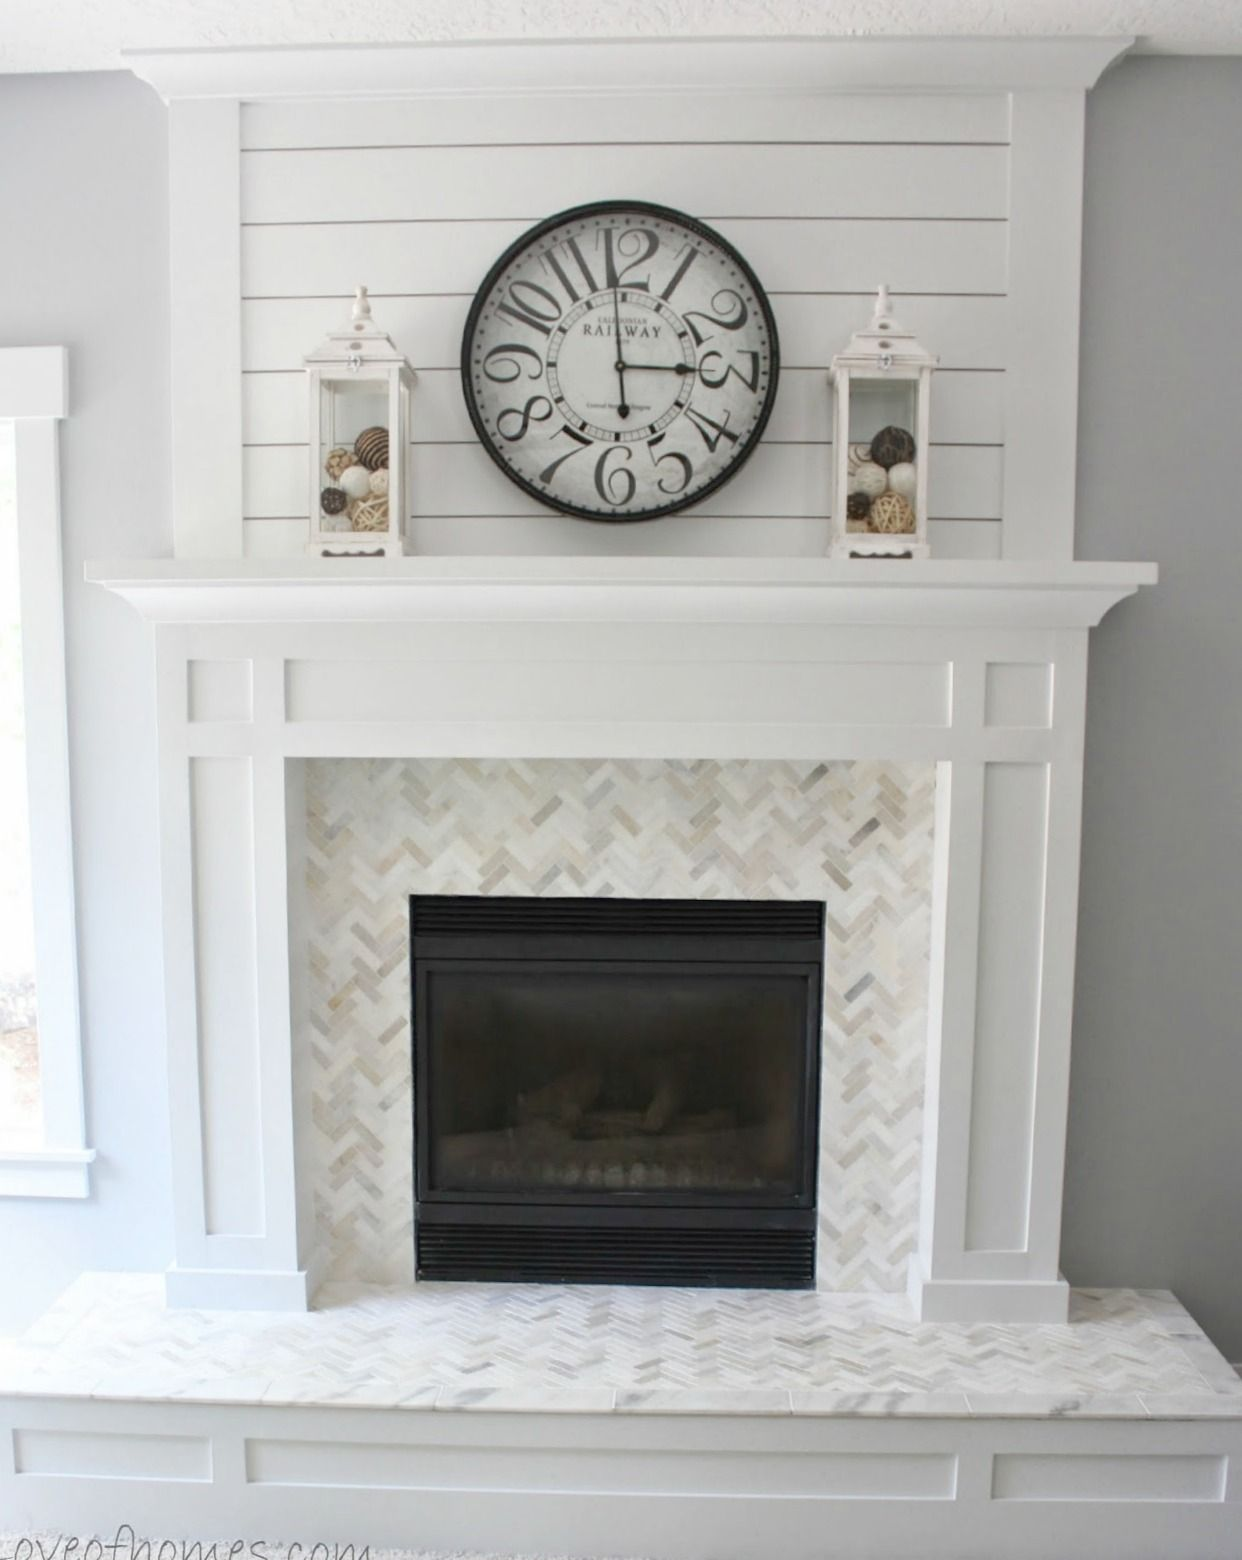 Prev3 Of 9next Use Your Arrow Keys To Browse White Fireplace Makeover Via Love Homes